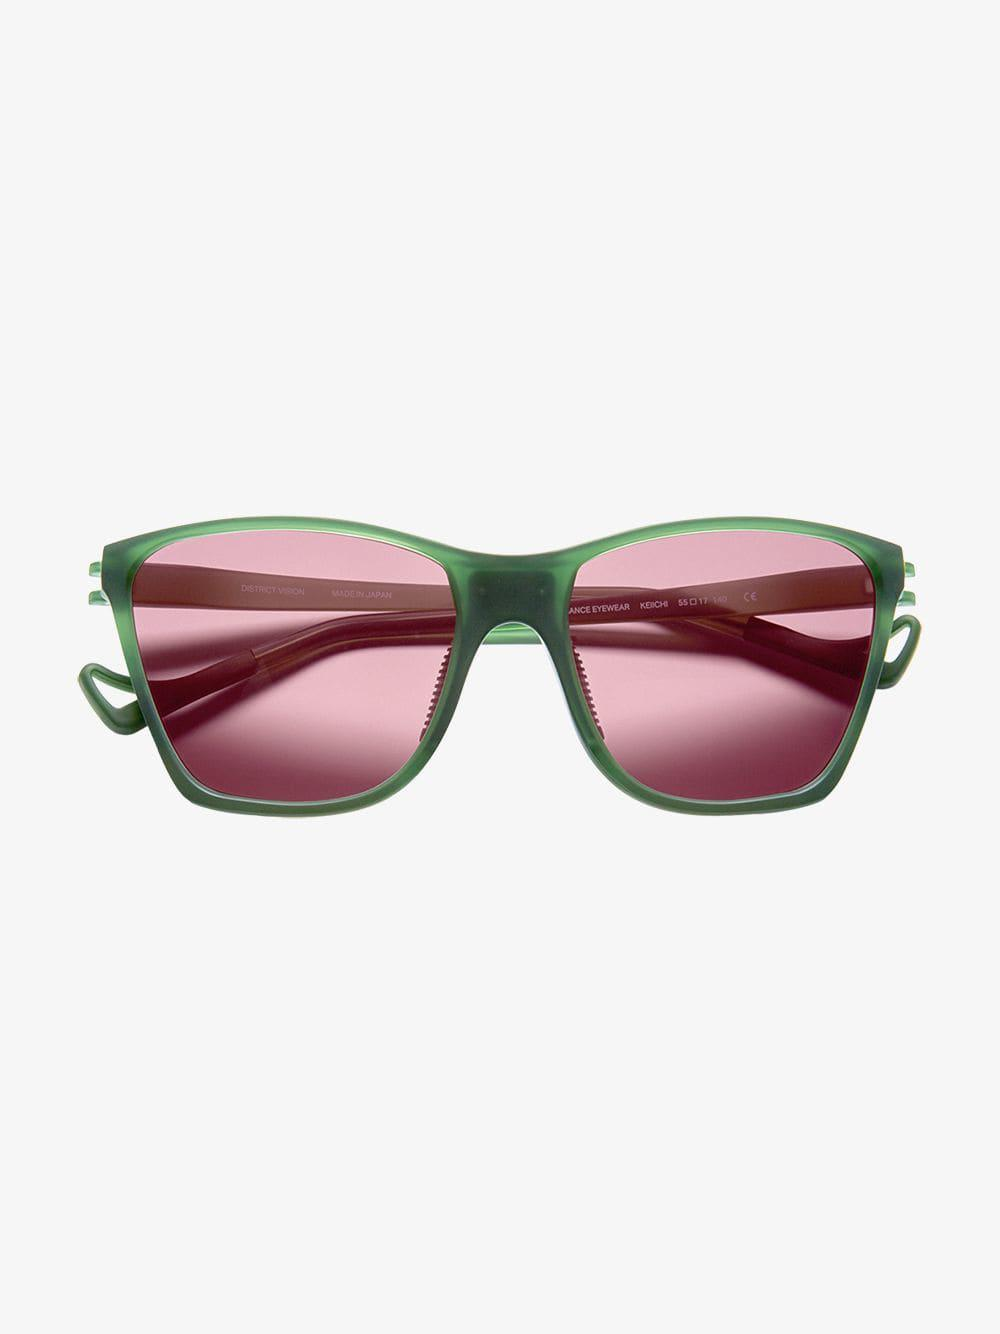 507411f4292 Lyst - District Vision Green Keiichi District Sky G15 Sunglasses in ...